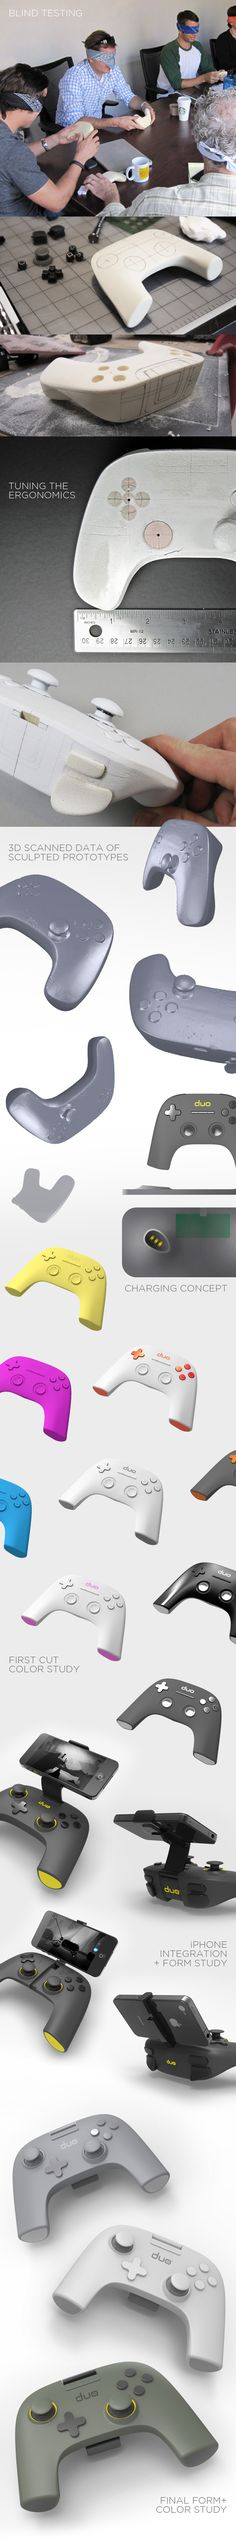 GAMER PRO by PENSAR , via Behance